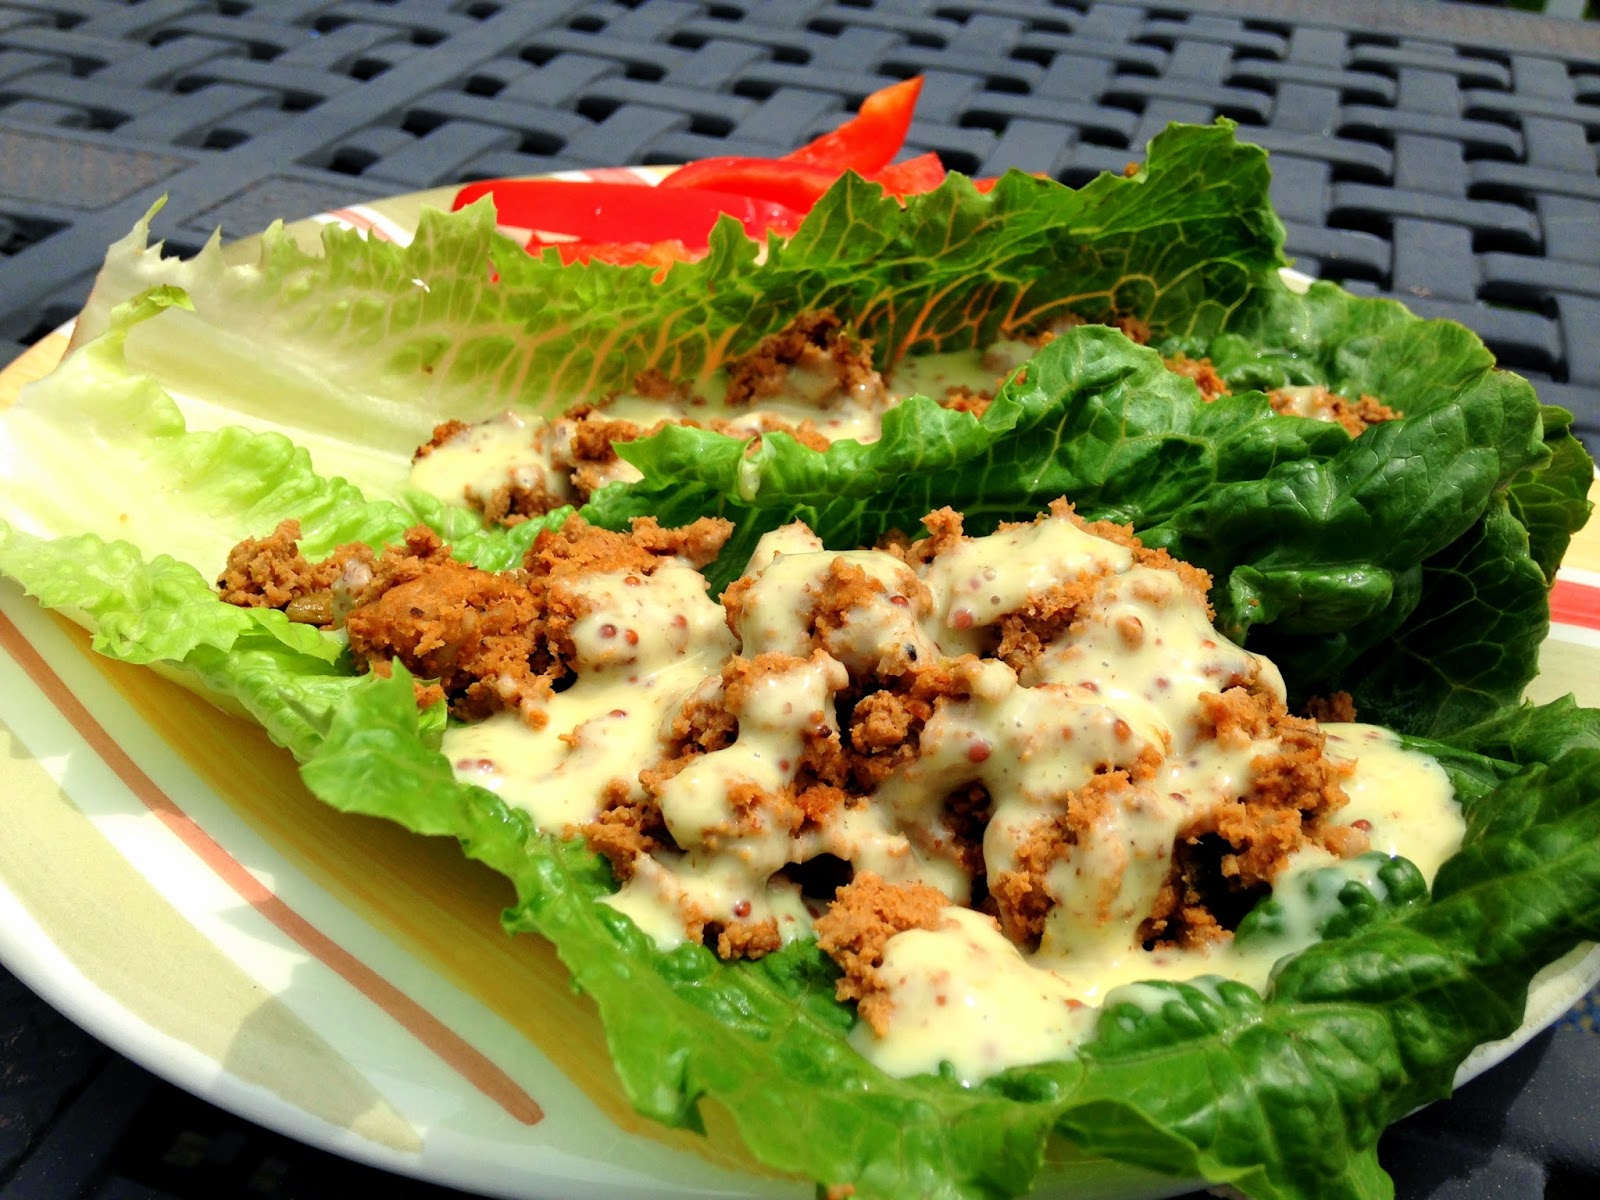 Cajun Turkey Lettuce Wraps from Hungry Gator Gal (grain-free, low-carb, drizzled with Bolthouse Farms Honey Mustard Yogurt Dressing)